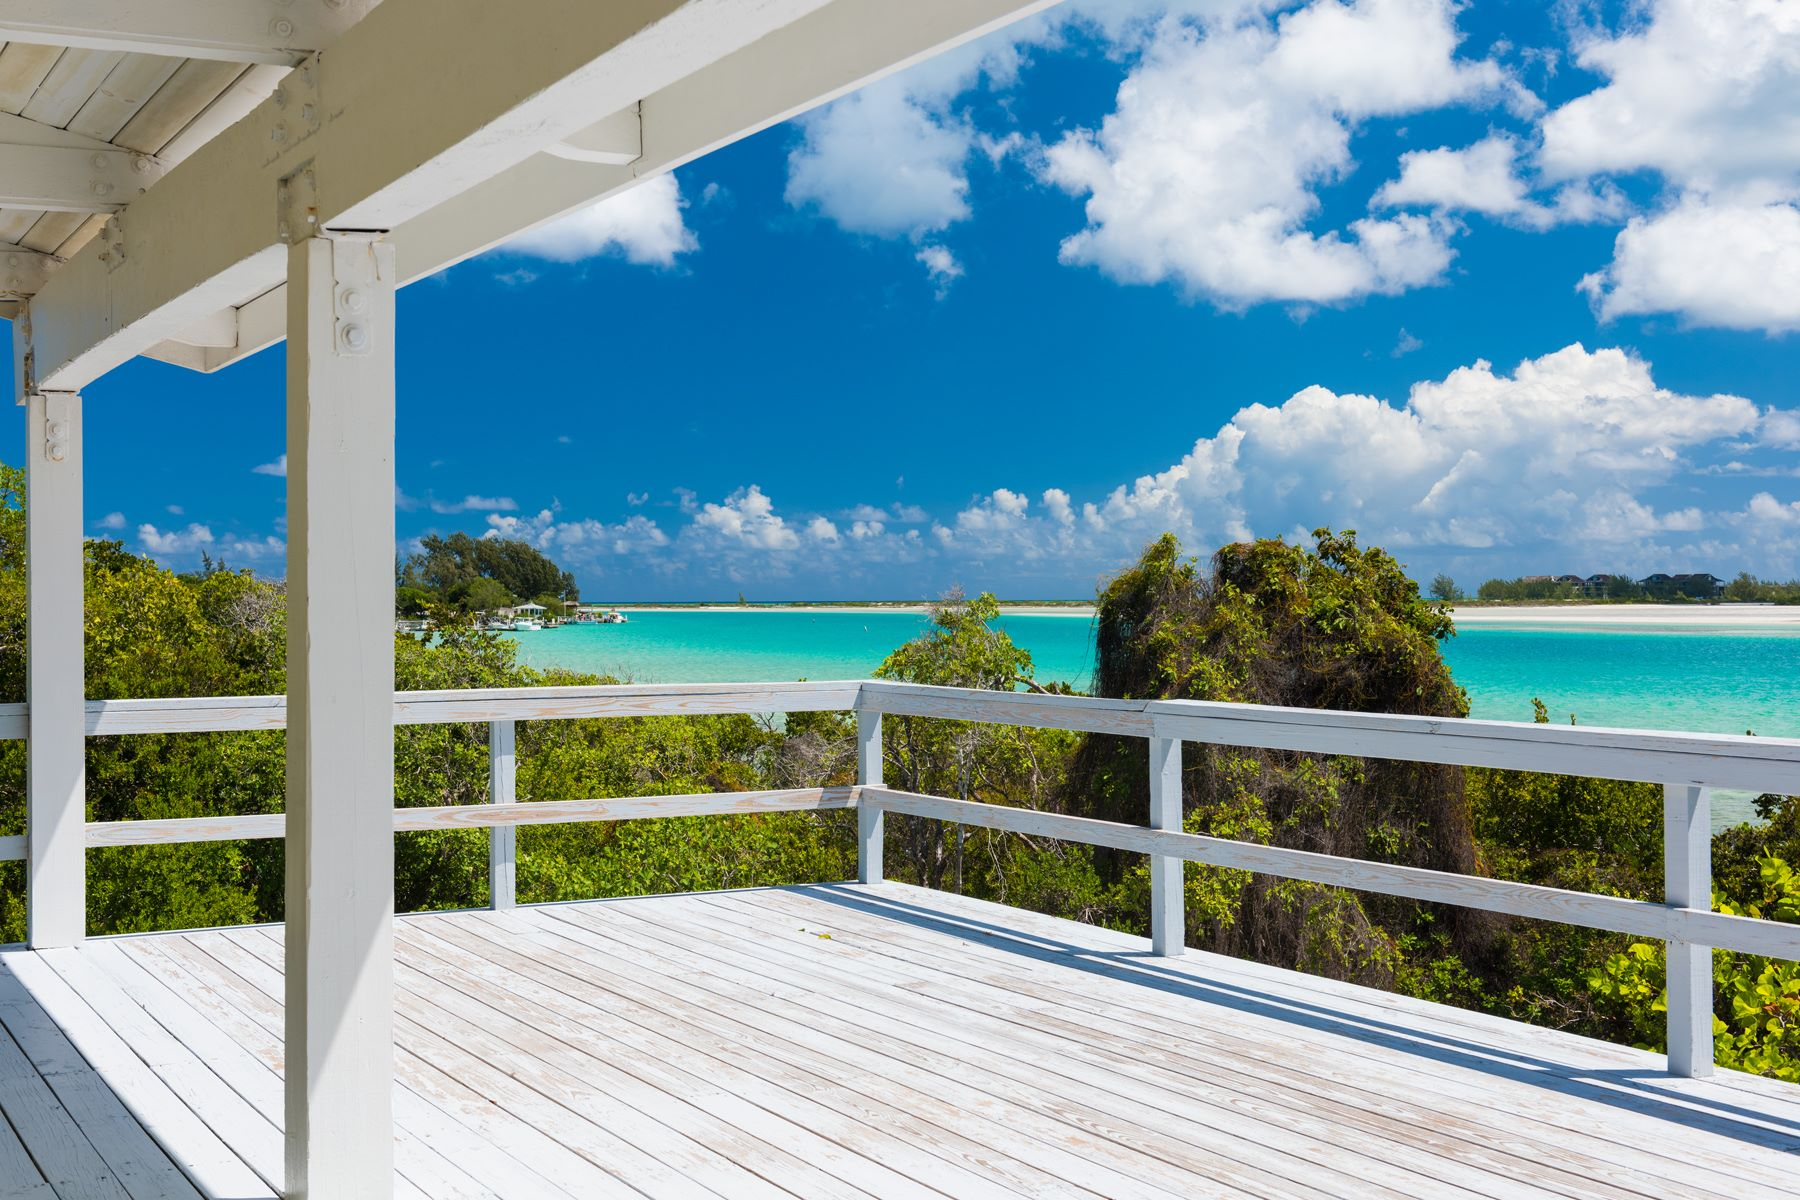 Single Family Home for Sale at Sandcastle on Pine Cay Channel Front Pine Cay, TCI Turks And Caicos Islands